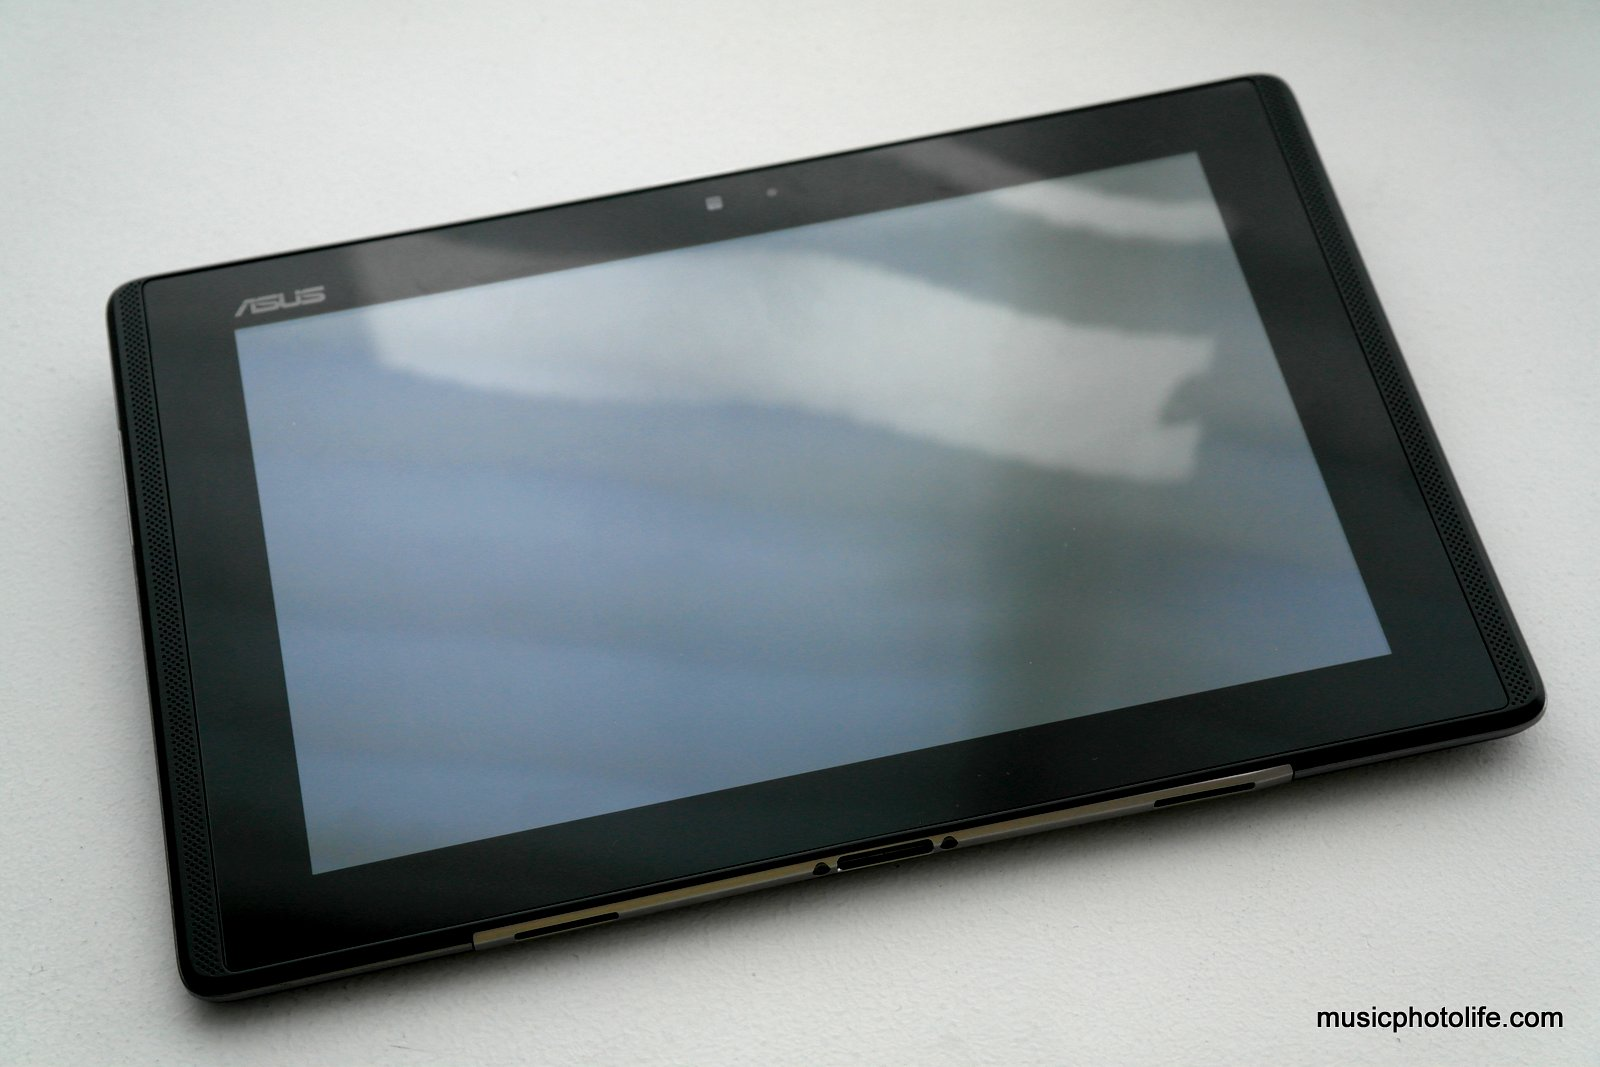 ASUS Padfone Review: User Experience